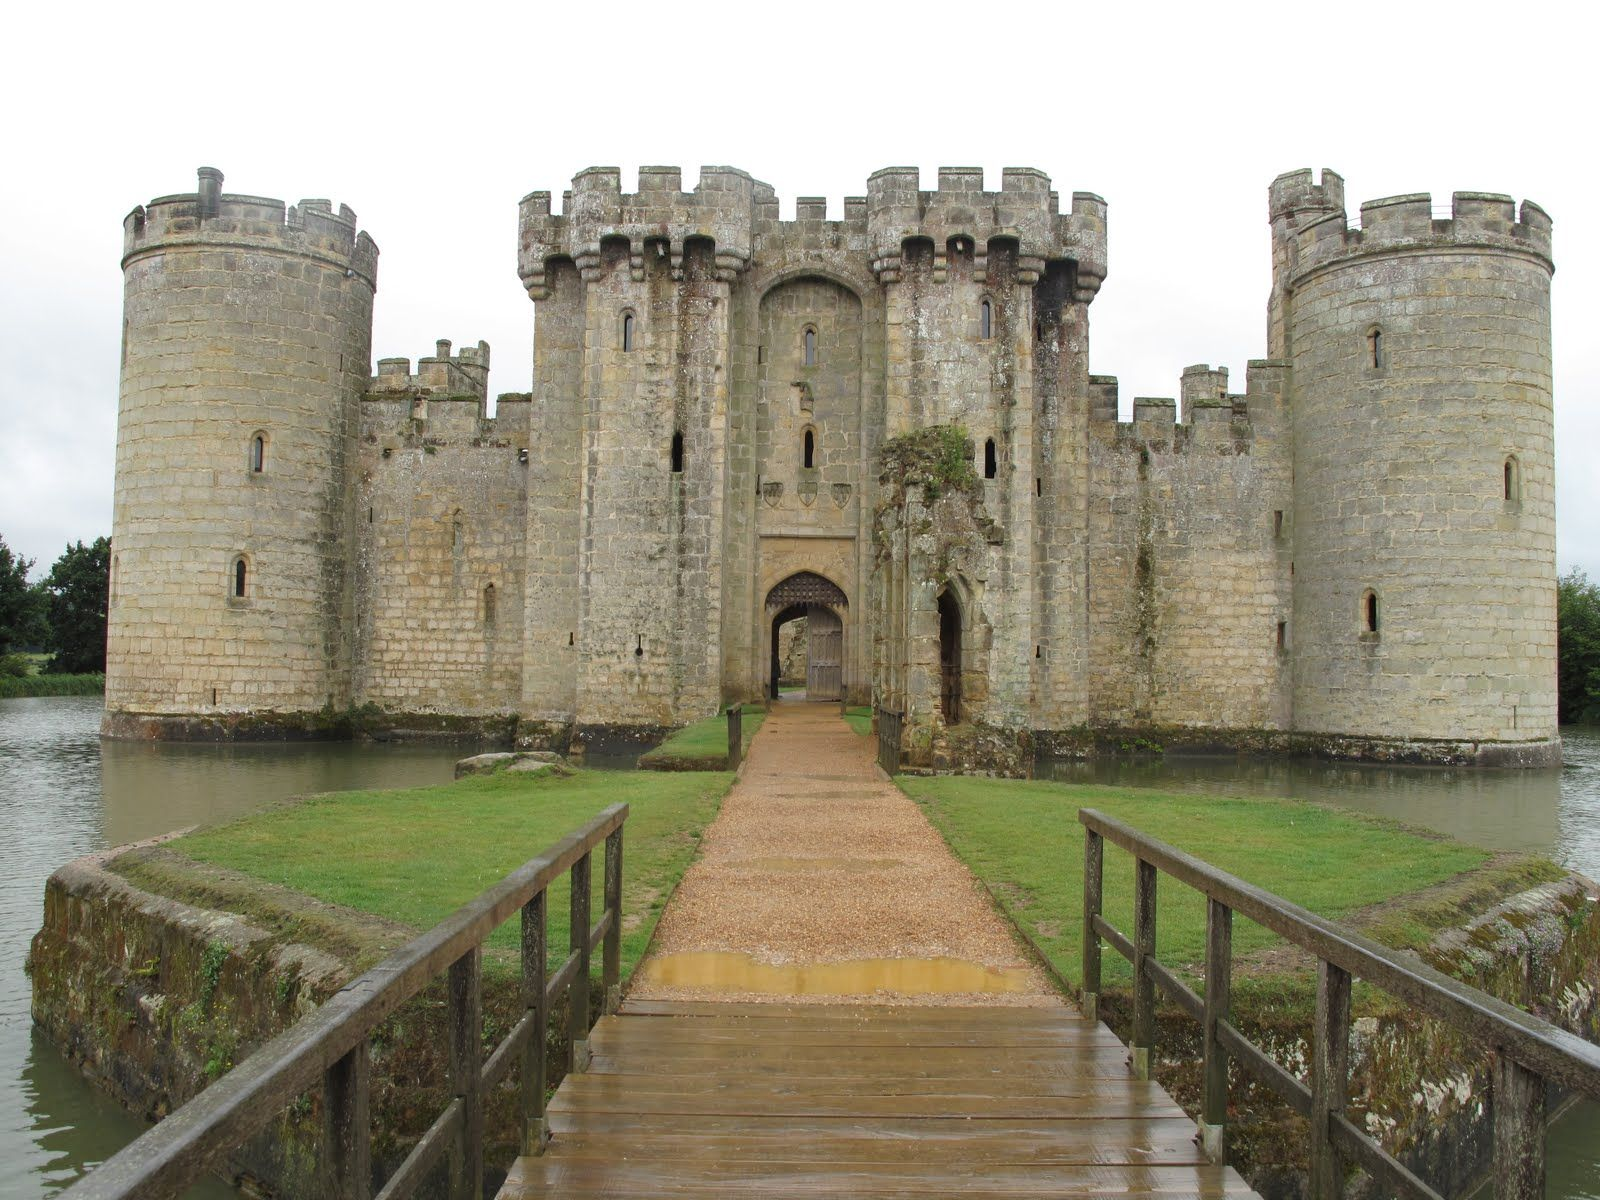 castles of medieval times essay Free essays on medieval castles get help with your writing 1 through 30.